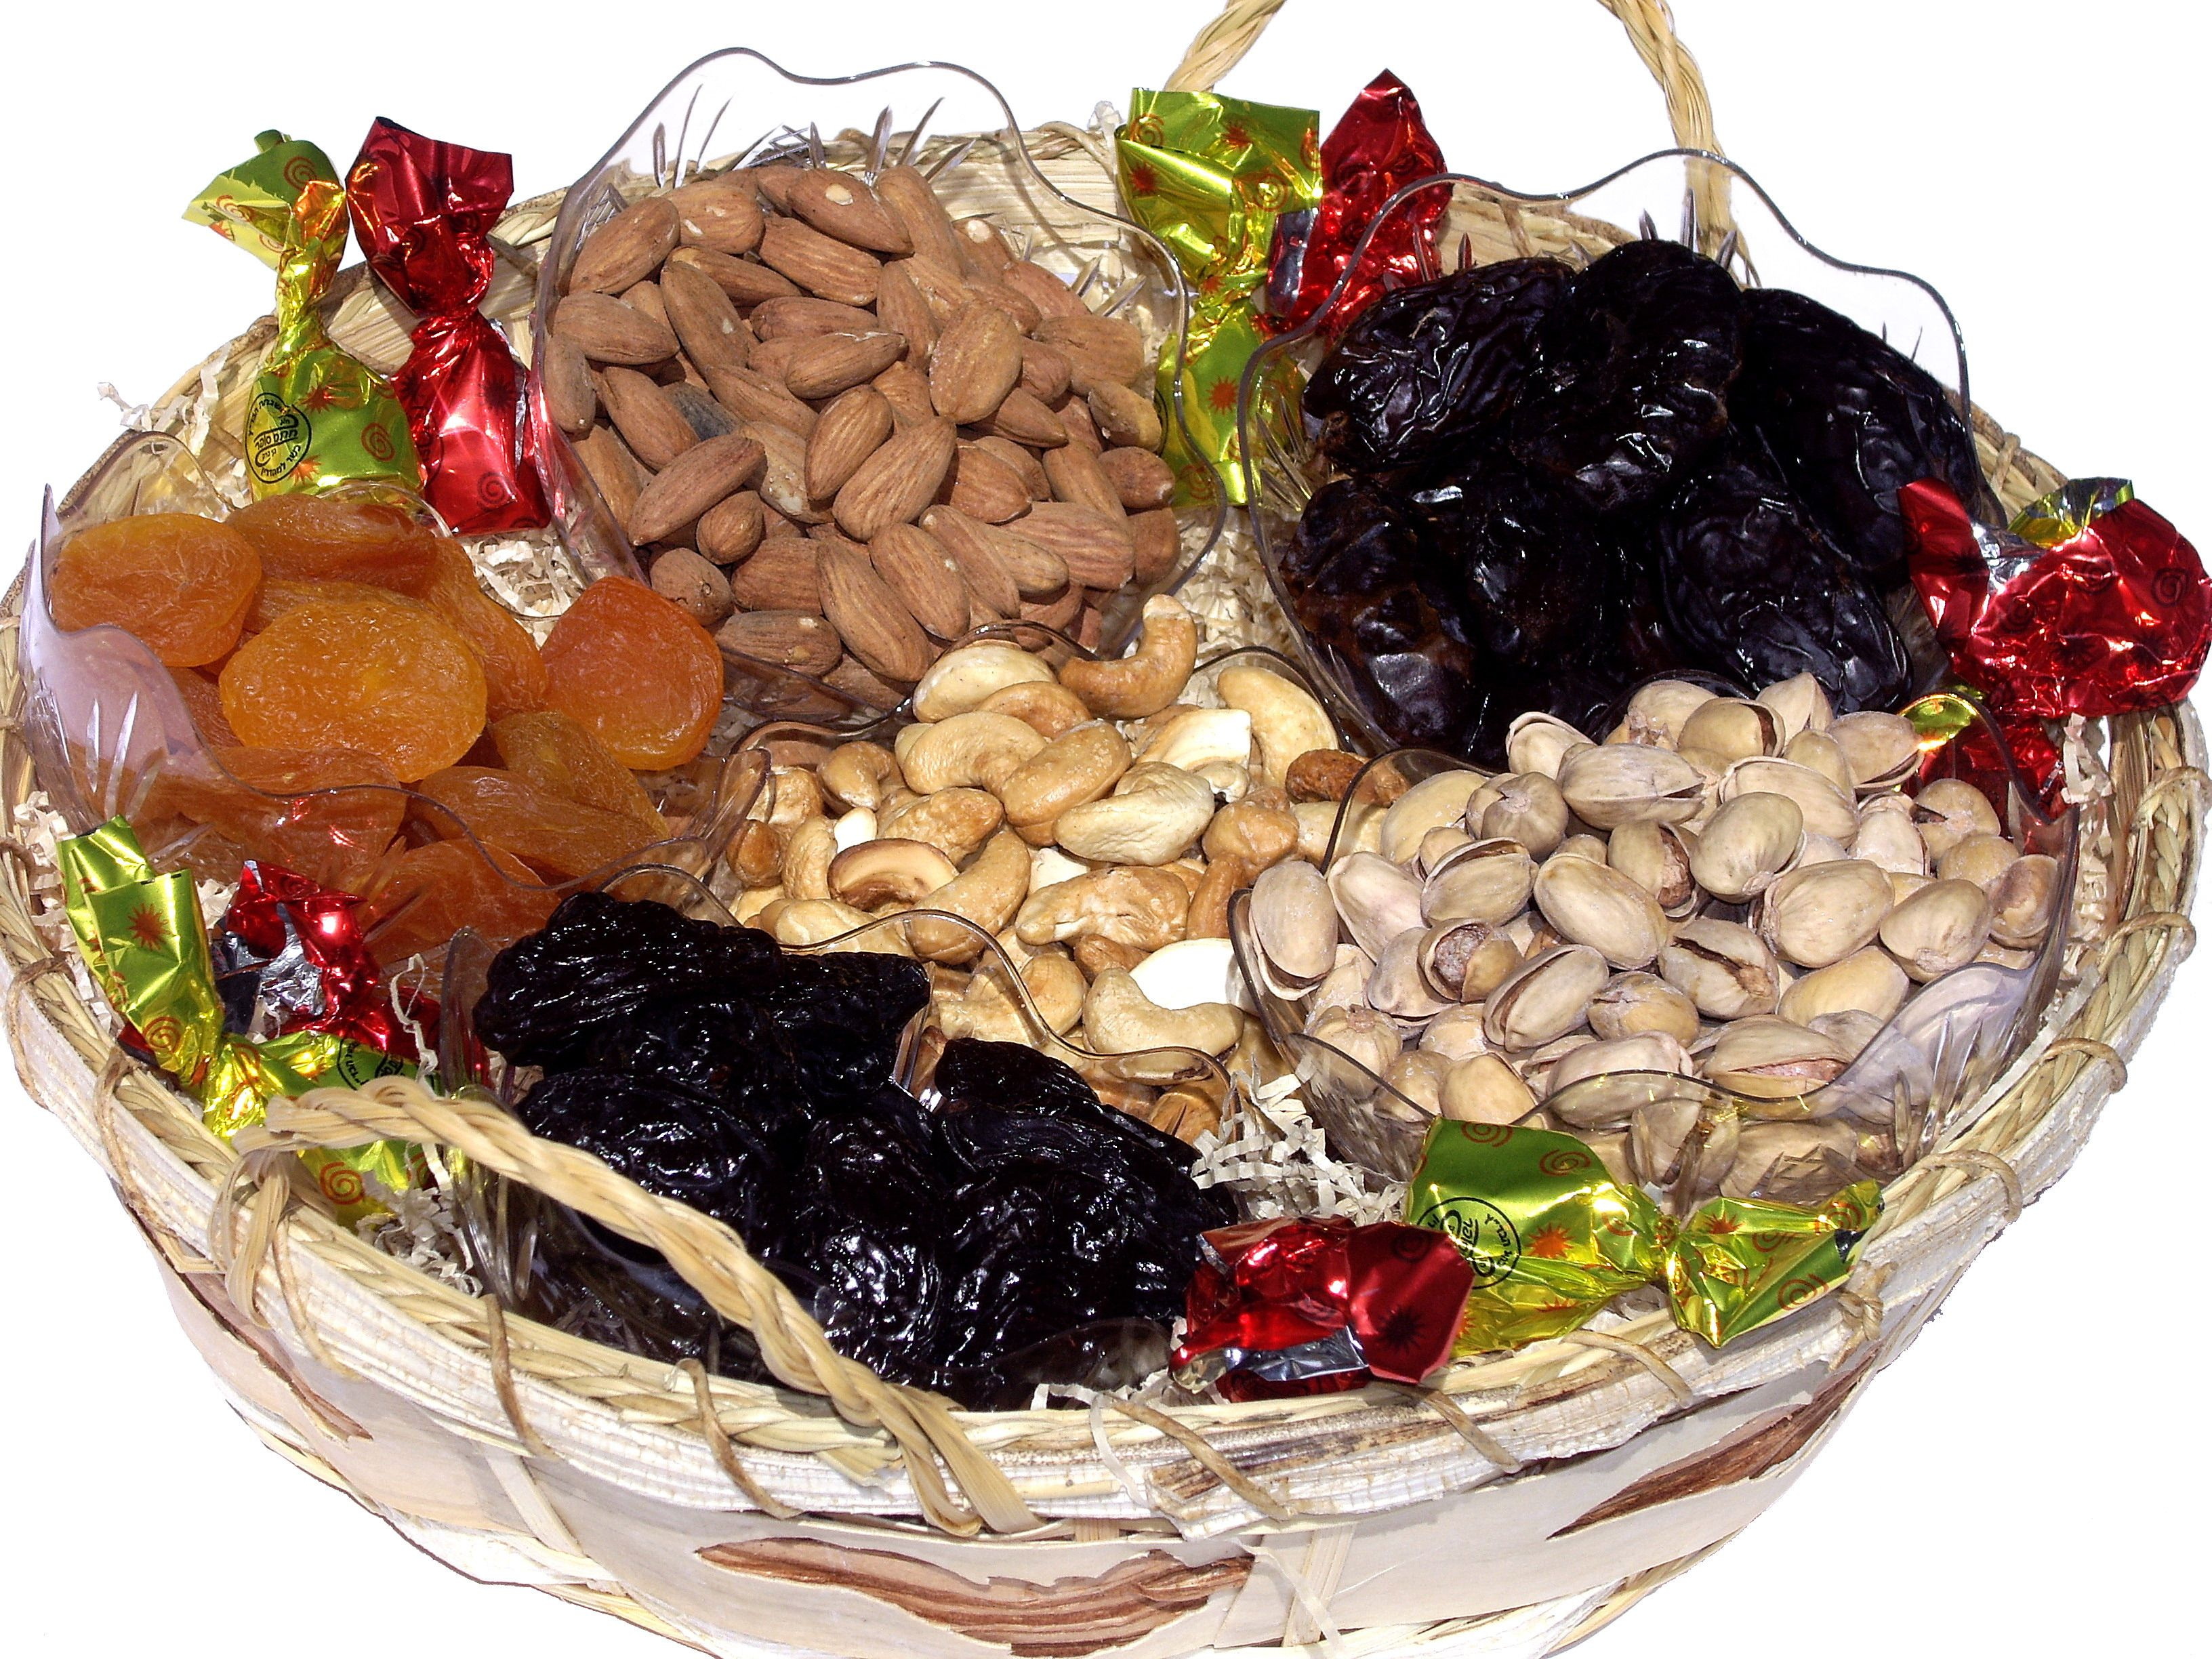 deluxe dried fruit  nuts basket wwwgilisgoodiescom  beautiful  - find this pin and more on beautiful gift baskets by gilisgoodies